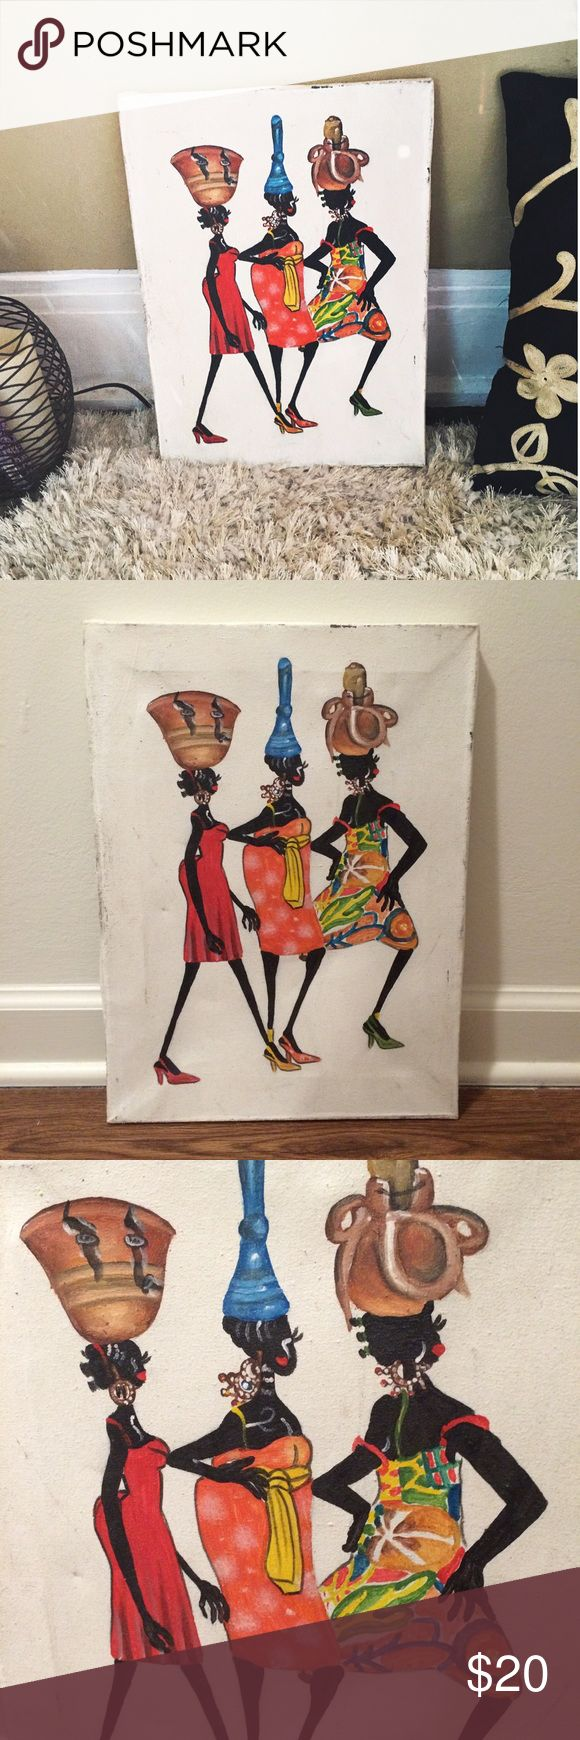 "Beautiful African Canvas Painting Beautiful authentic canvas painting! African culture inspired! Definition of gorgeous, sassy, and strong! Measures: 11.5""x16"". There are some signs of distressed wear, but the painting was purchased like that! Gives it an antique theme. Ask questions! (Will be packaged very well to prevent damage) *first pic is filtered to brighten Vintage Other"